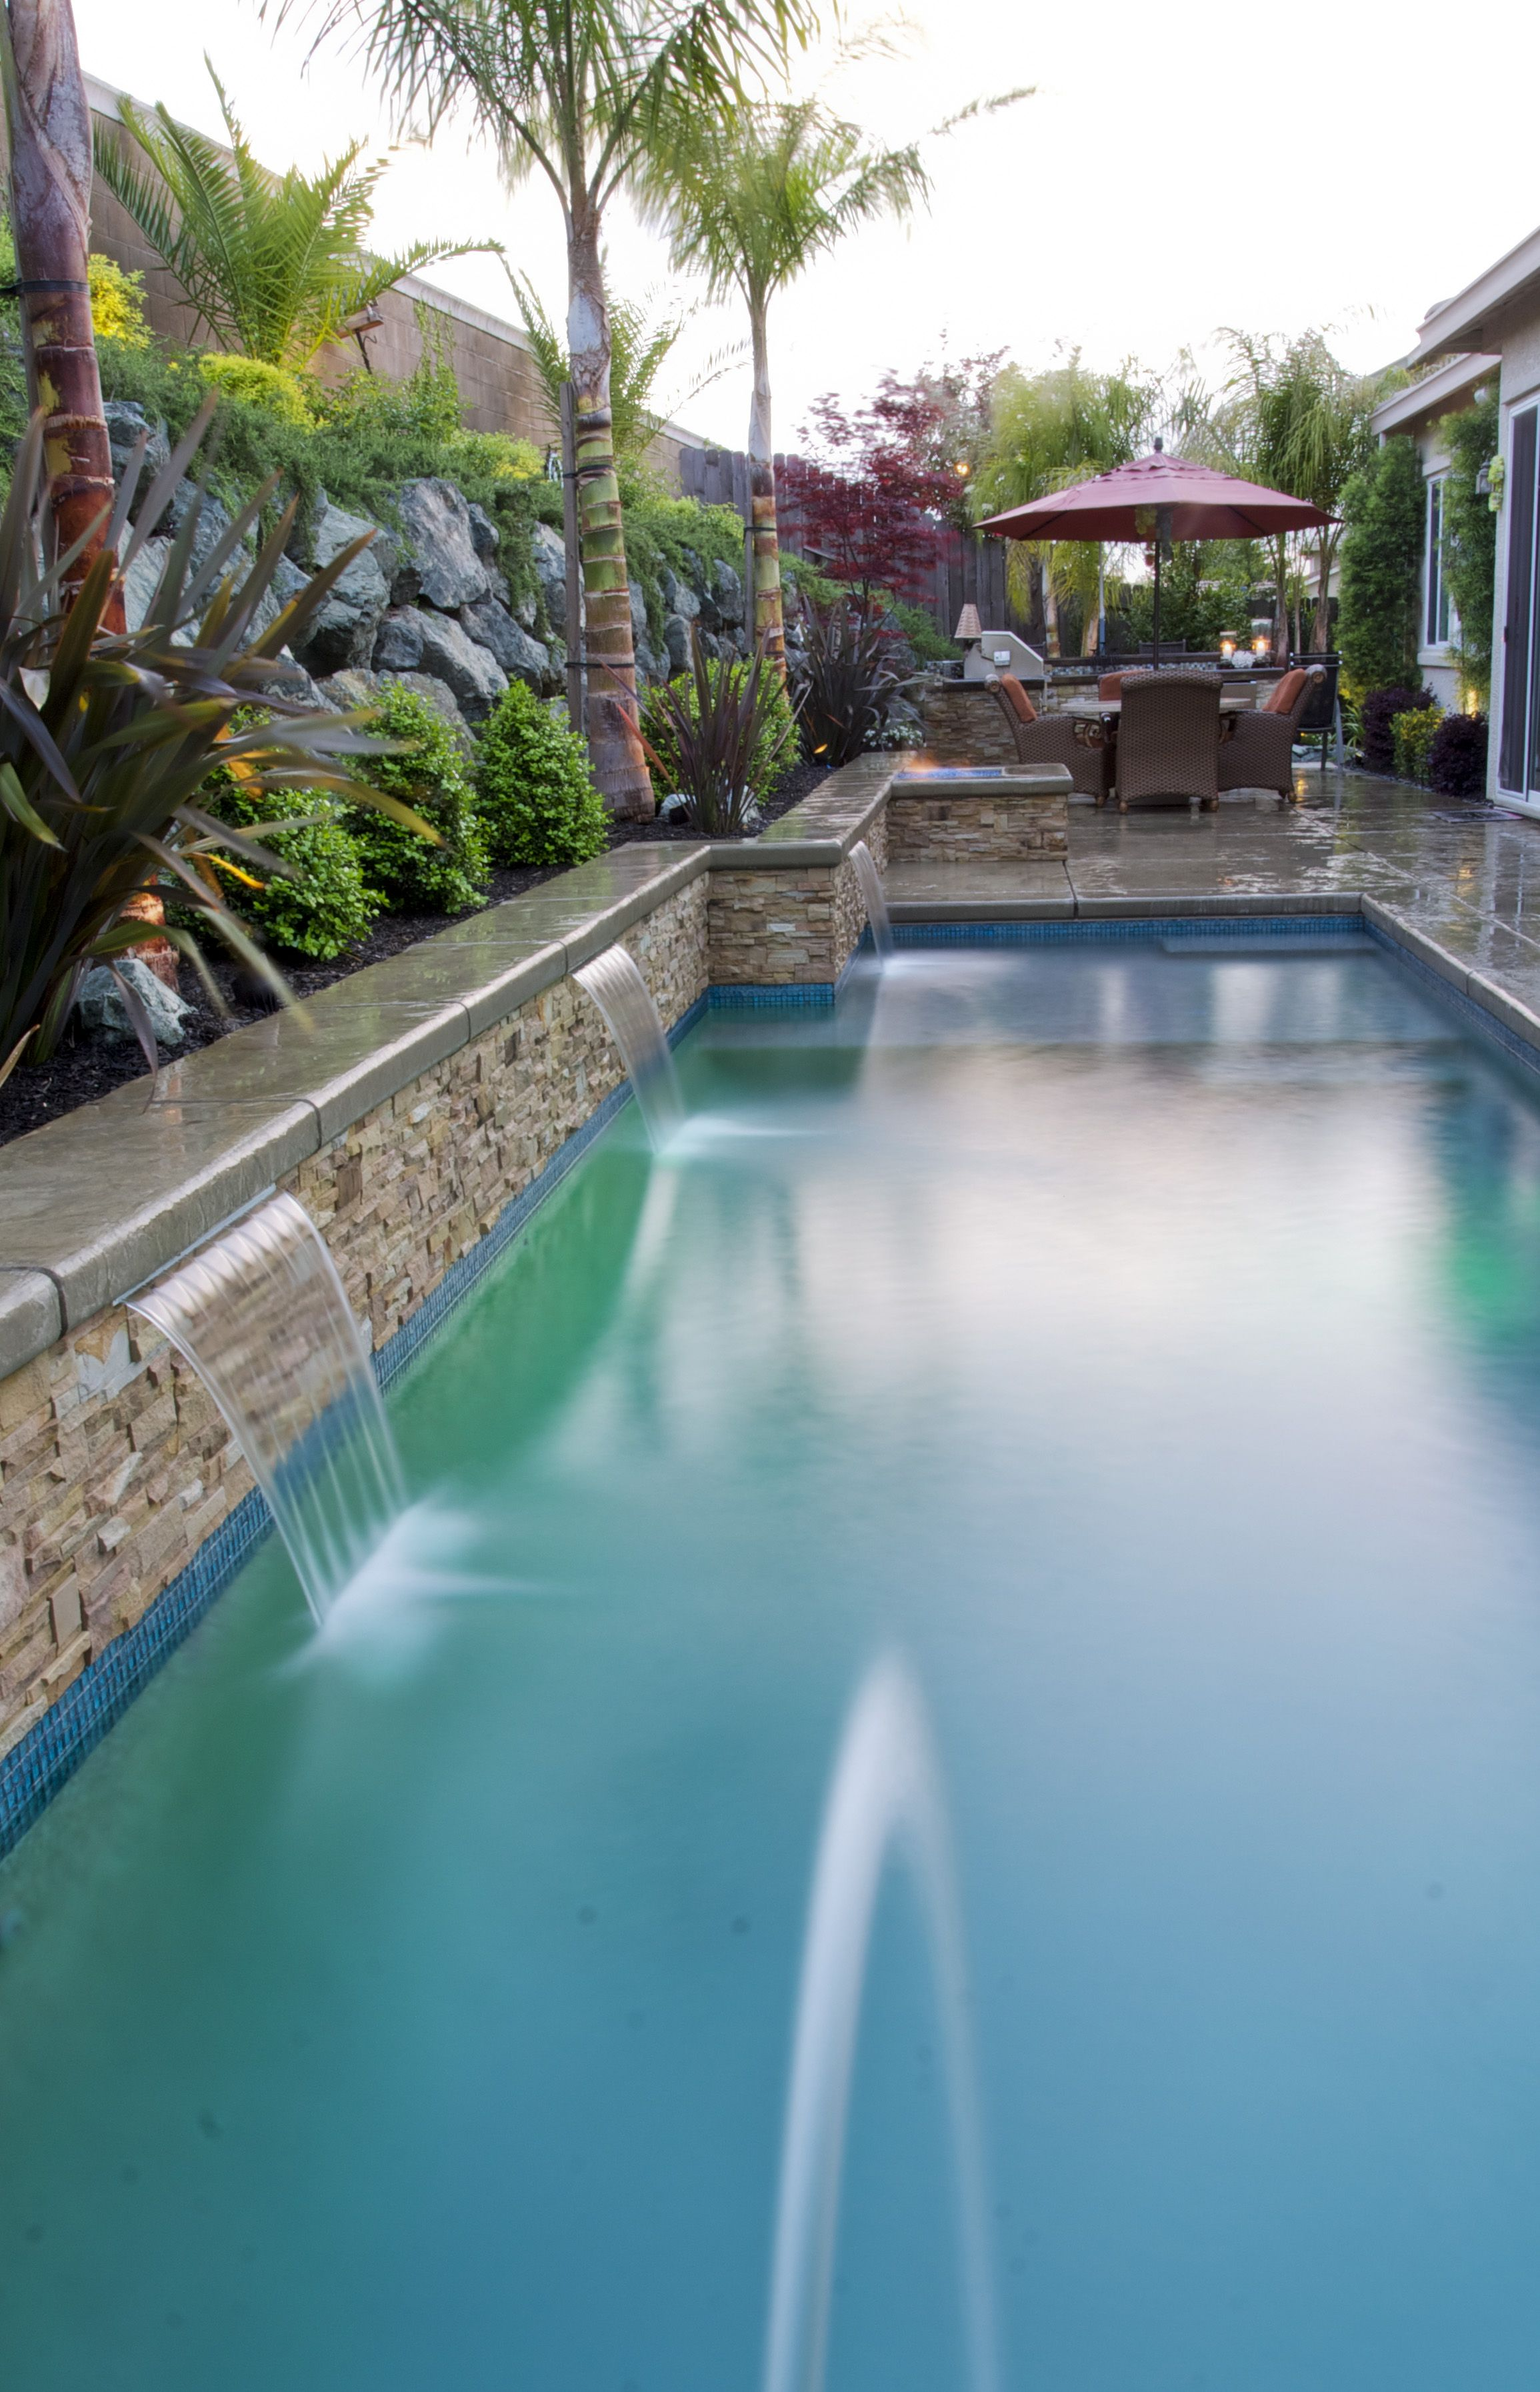 Premier Pools And Spas St. Louis Http://www.premierpoolsandspas.com